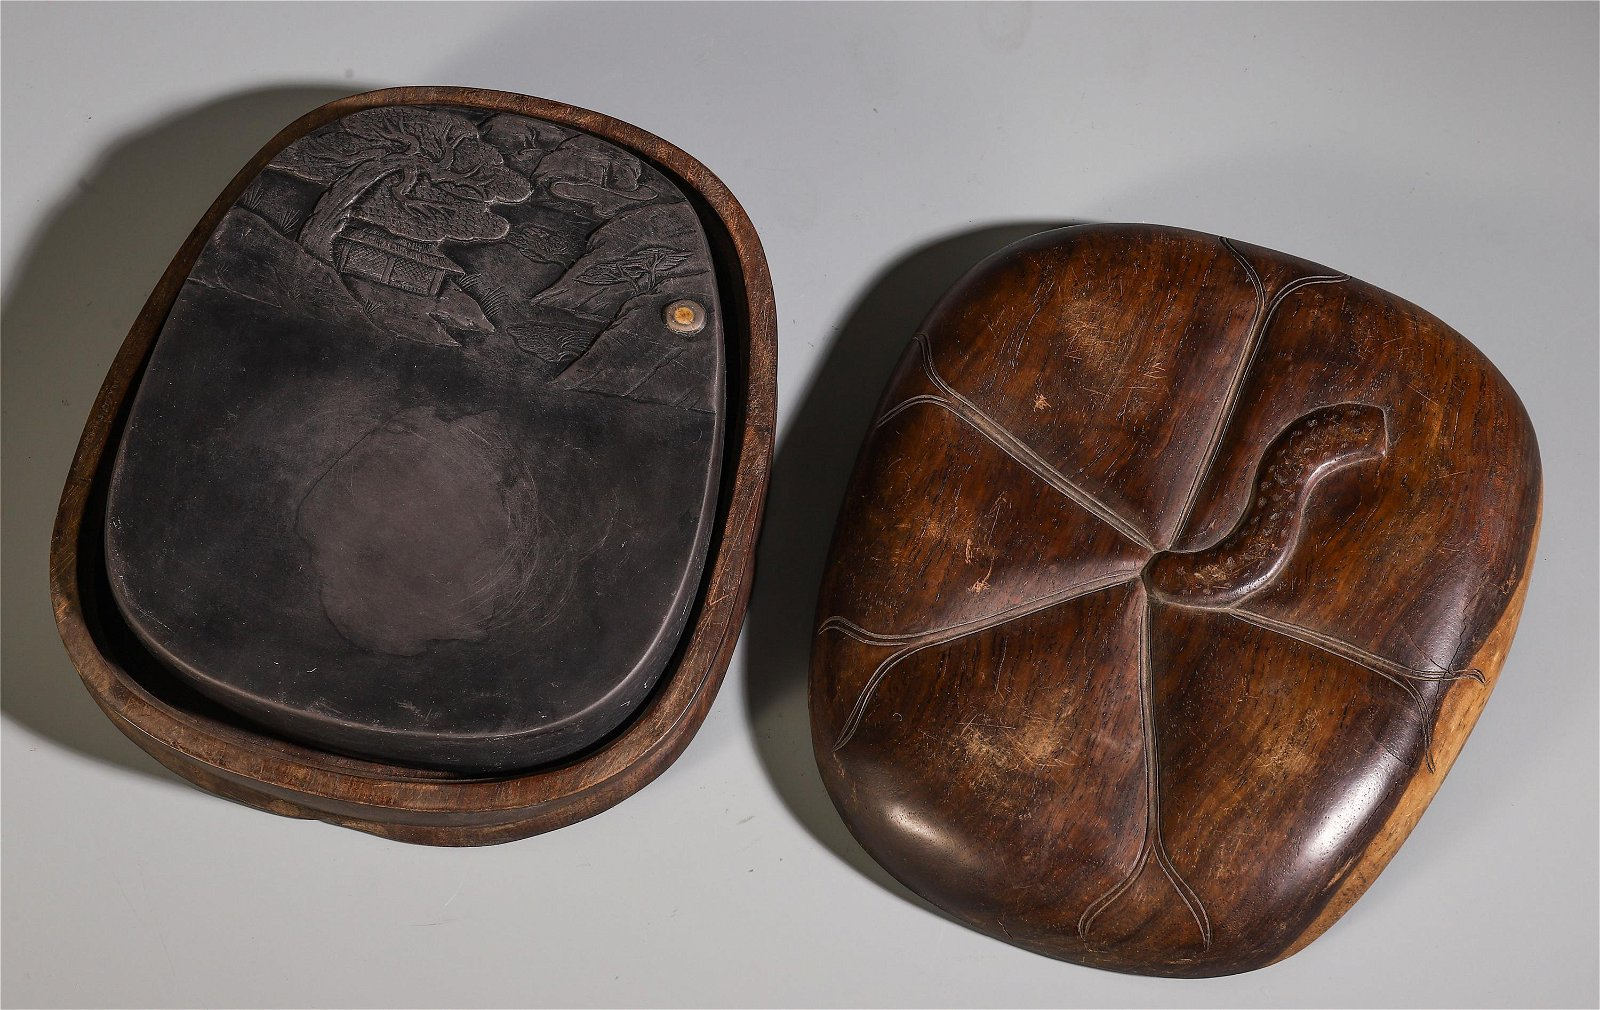 A Chinese Ink Stone with Box